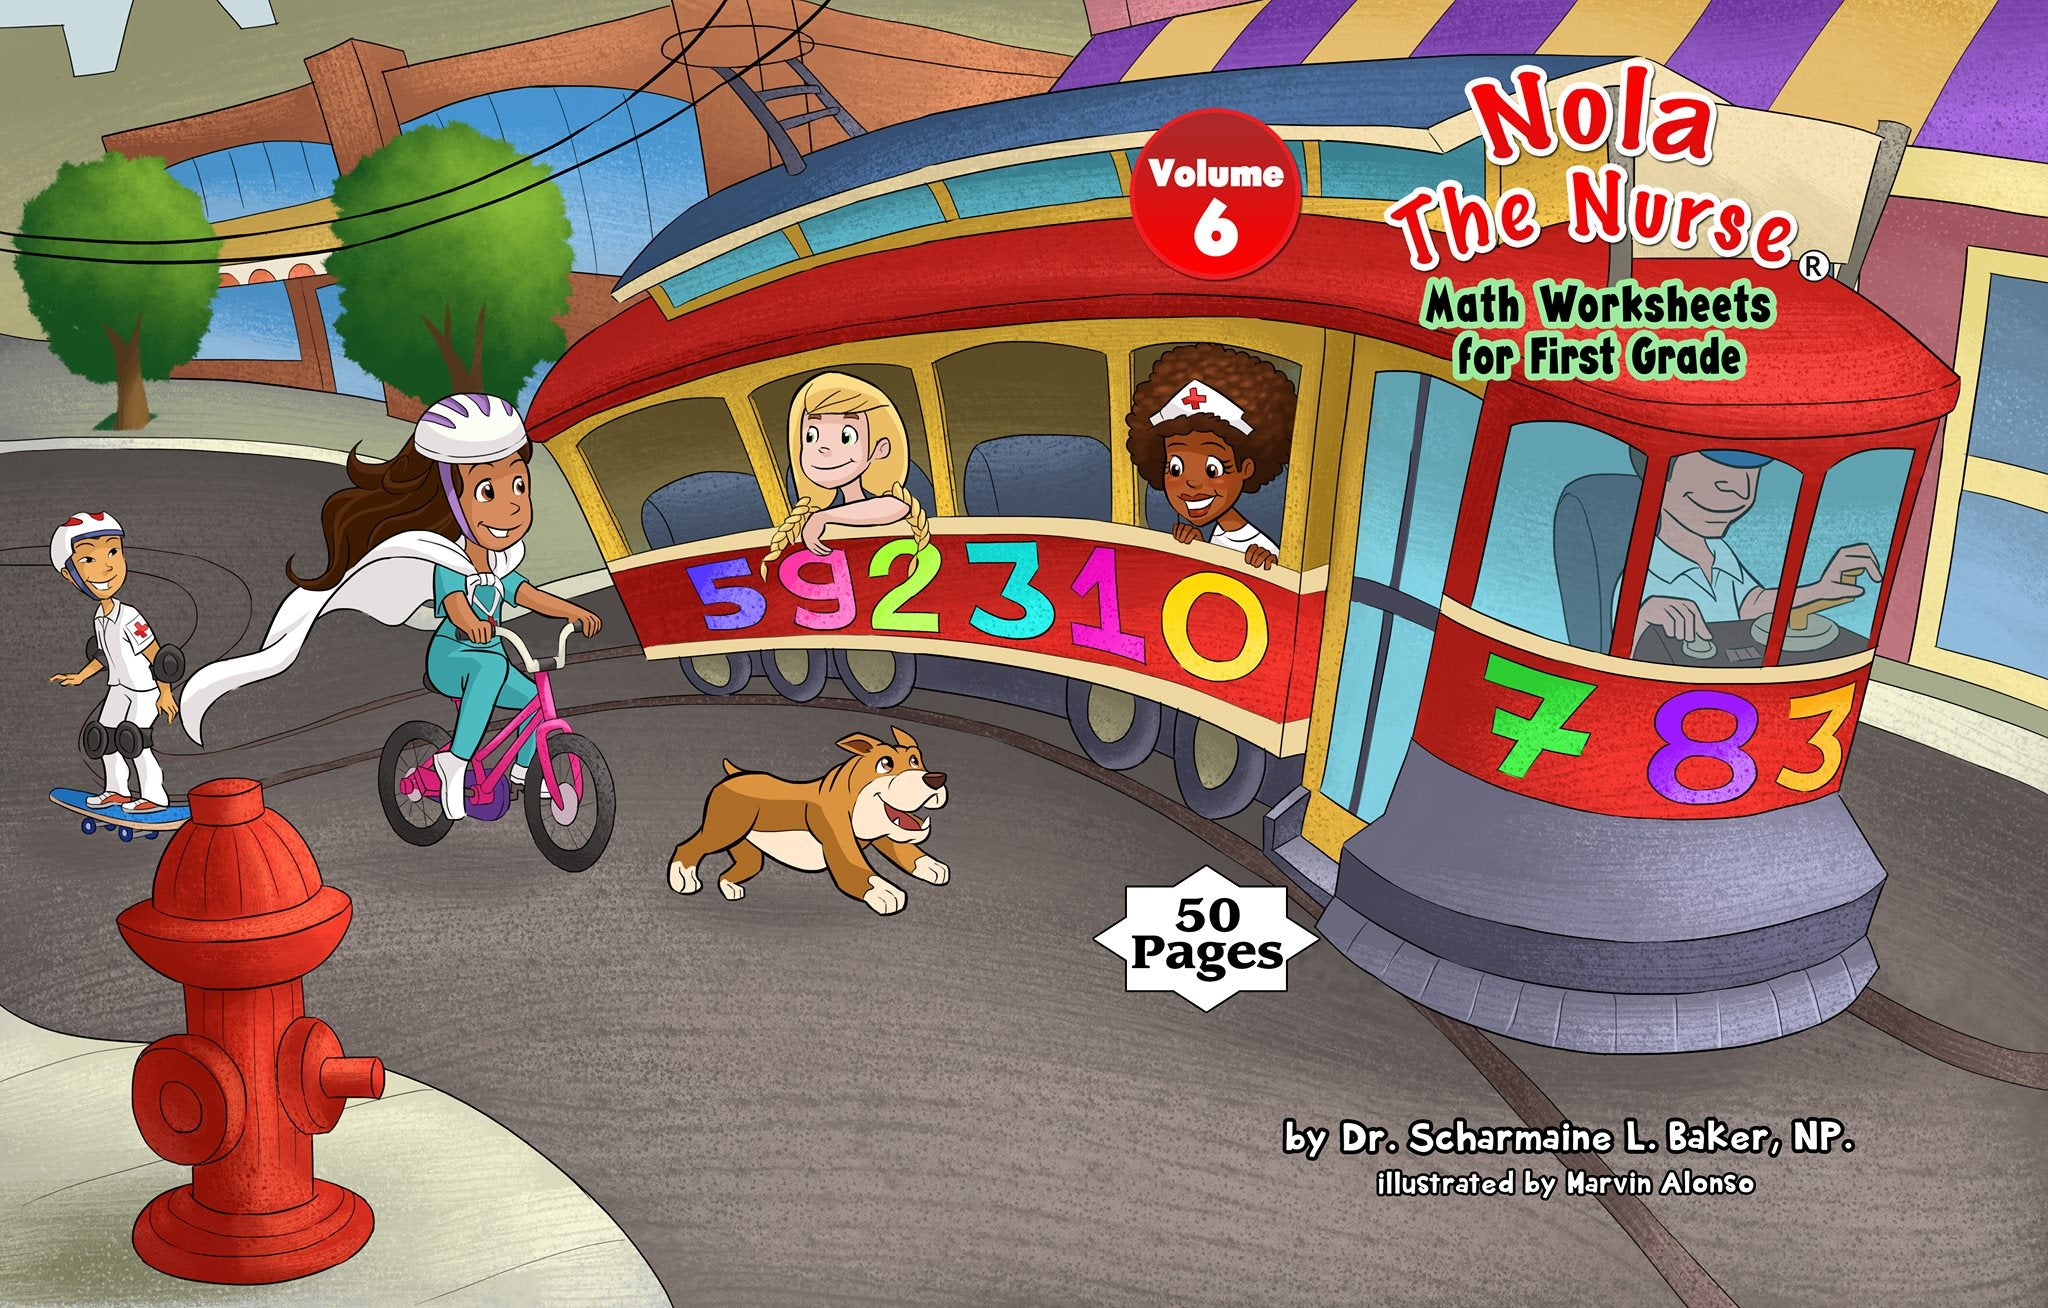 Nola the Nurse ® Math Worksheets for First Graders Vol. 6 – Nola The ...